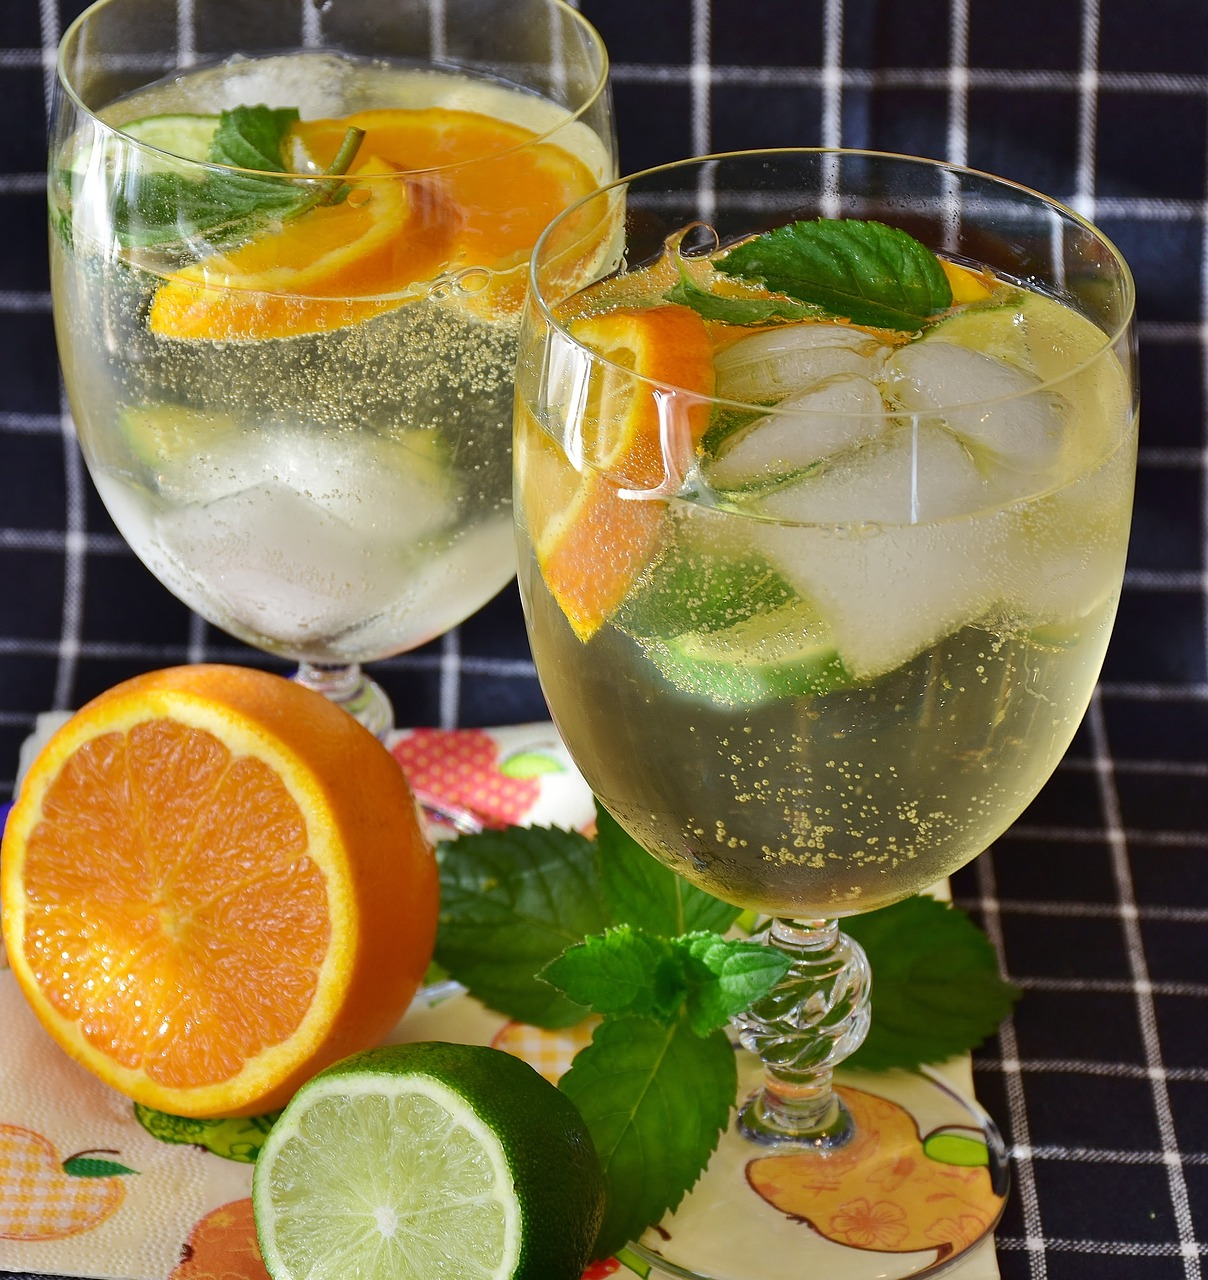 cocktail,prosecco,lime,drink,mineral water,ice,mint,glass,cold,lemon,mineral,summer,citrus,lemonade,healthy,leaf,liquid,refreshment,carbonic acid,the drink,of course,frisch,soda,delicious,thirst,fruit,juice,yellow,spring,leisure,alcoholic,celebrate,alcohol,party,spirit,mixed drink,bottles,free pictures, free photos, free images, royalty free, free illustrations, public domain